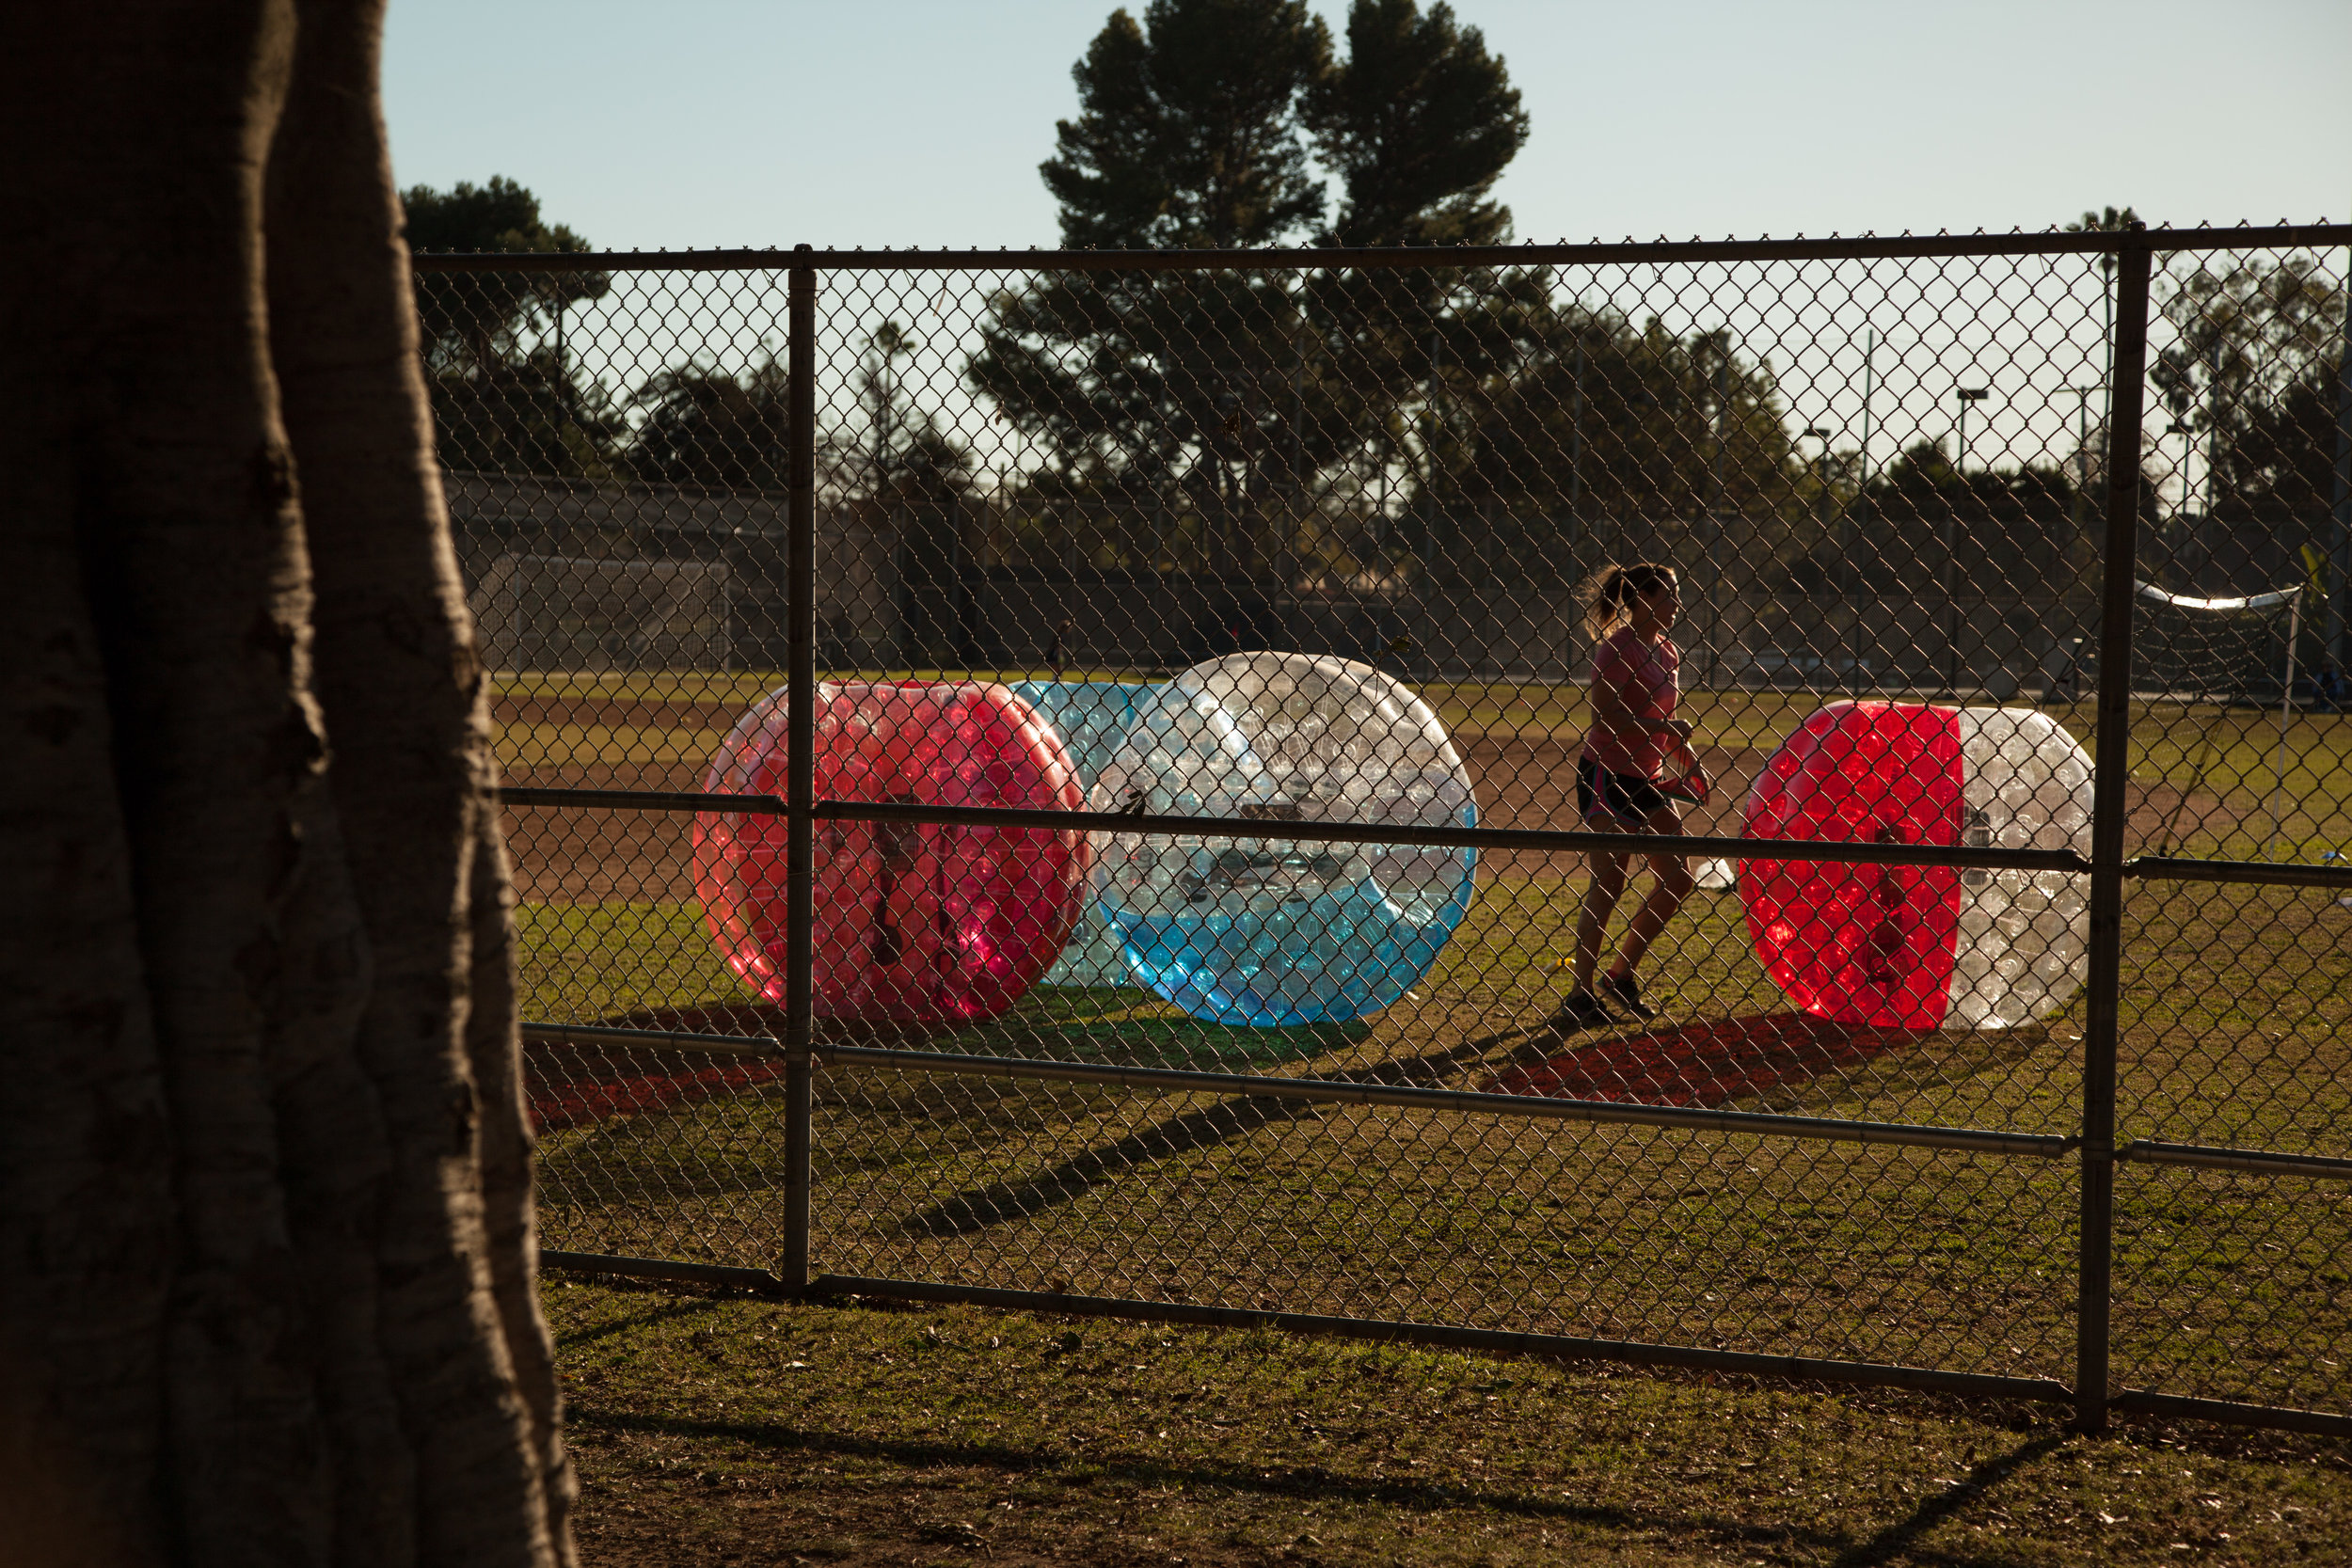 Looking for Bubble soccer near me, Stratus Bubble Soccer is your answer